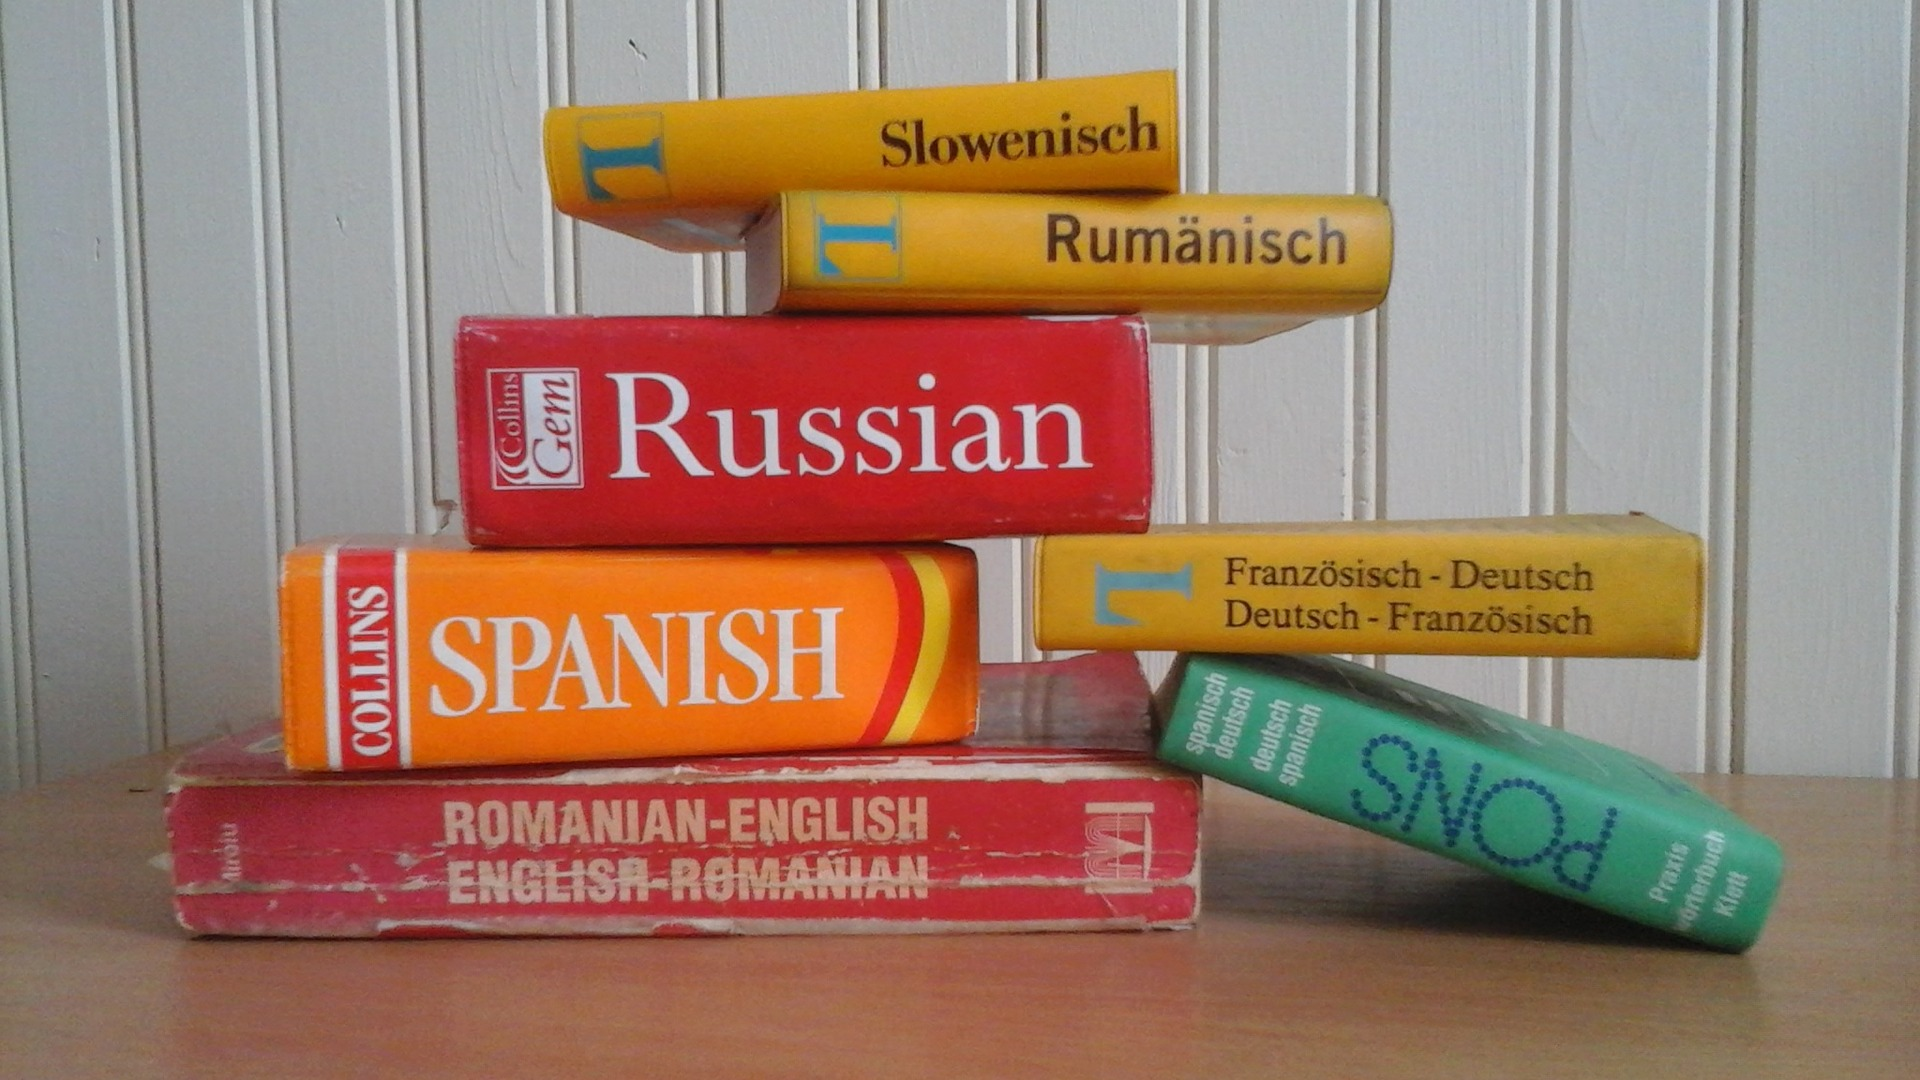 Translation services are in high demand